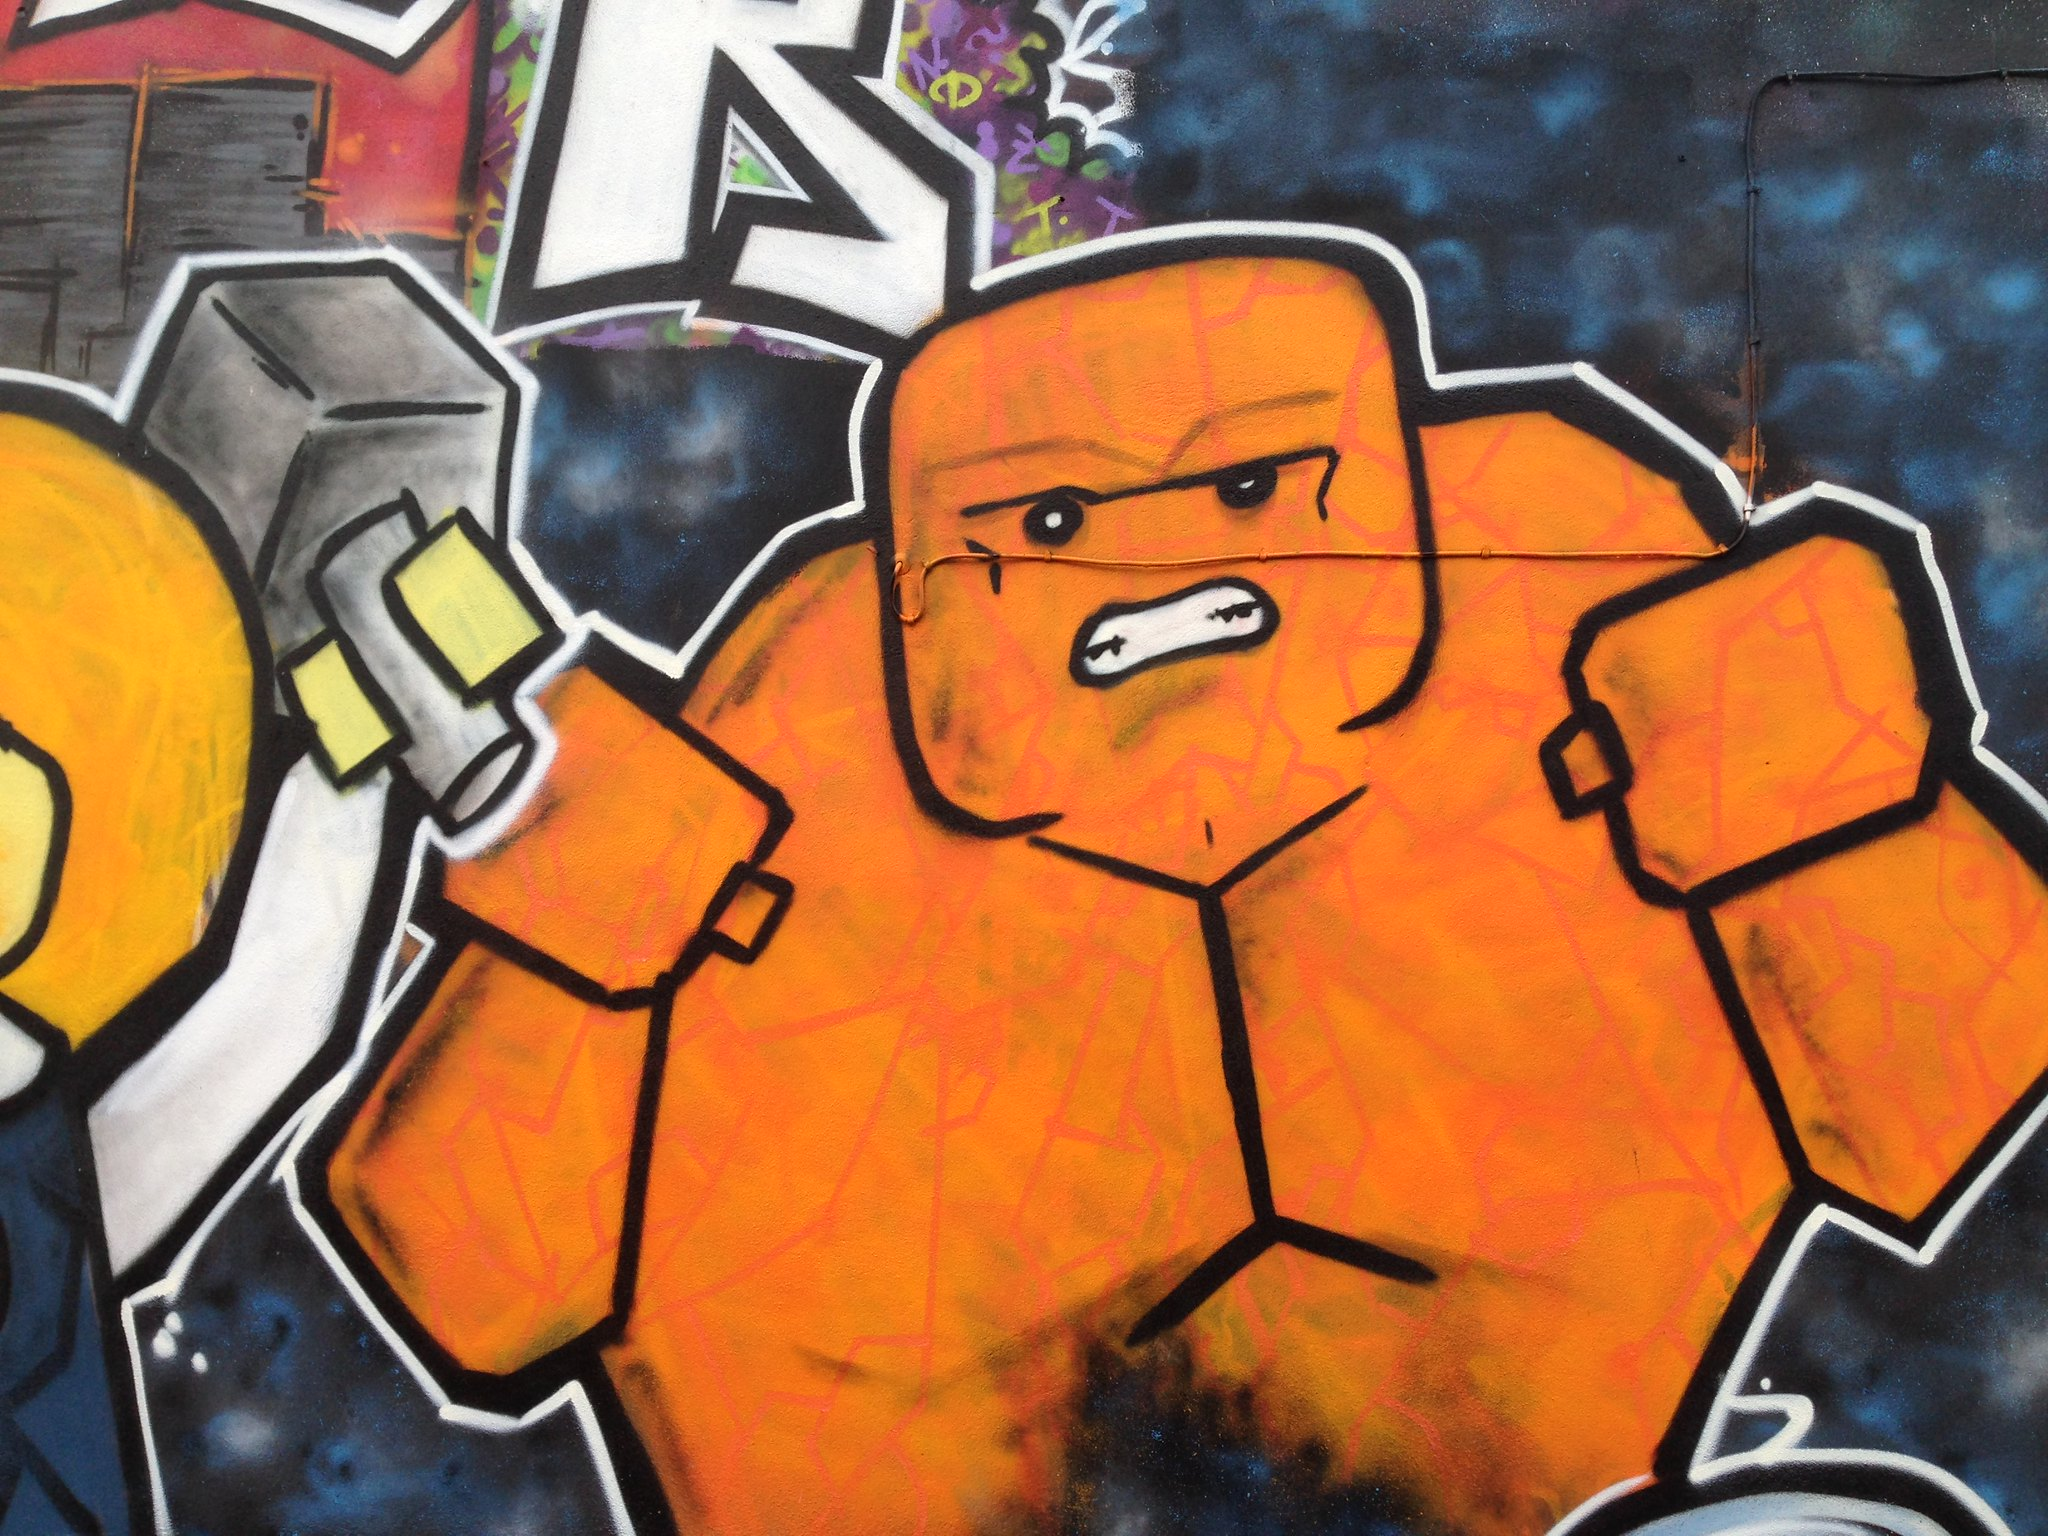 Marvel Lego The Thing street art, Blackpool, by Dominic Carlyle